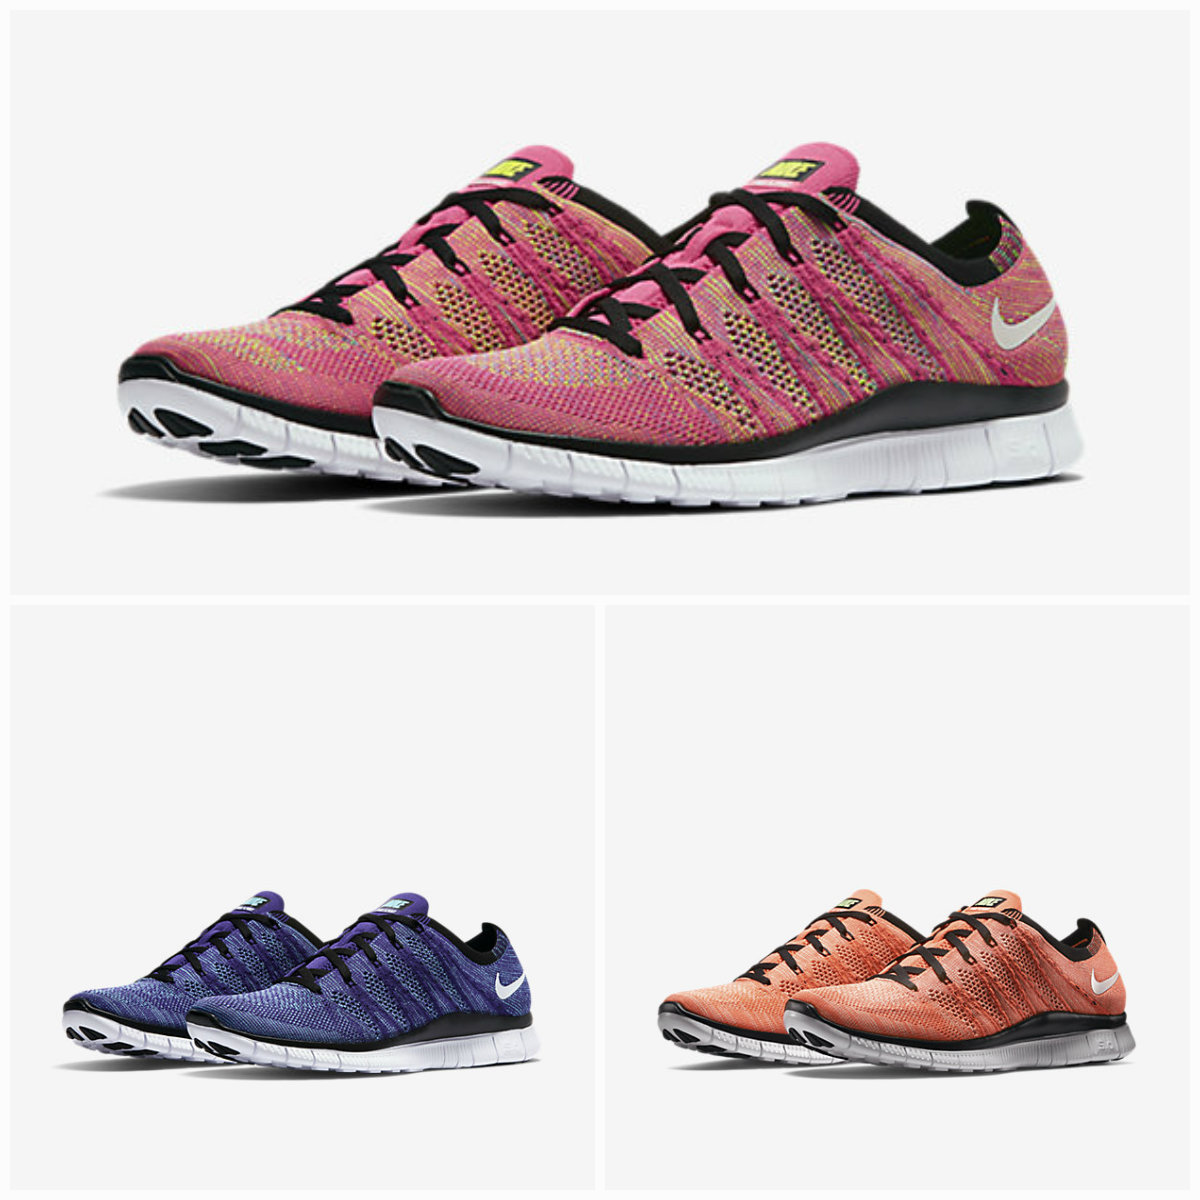 Nike Free Flyknit NSW – Available Now